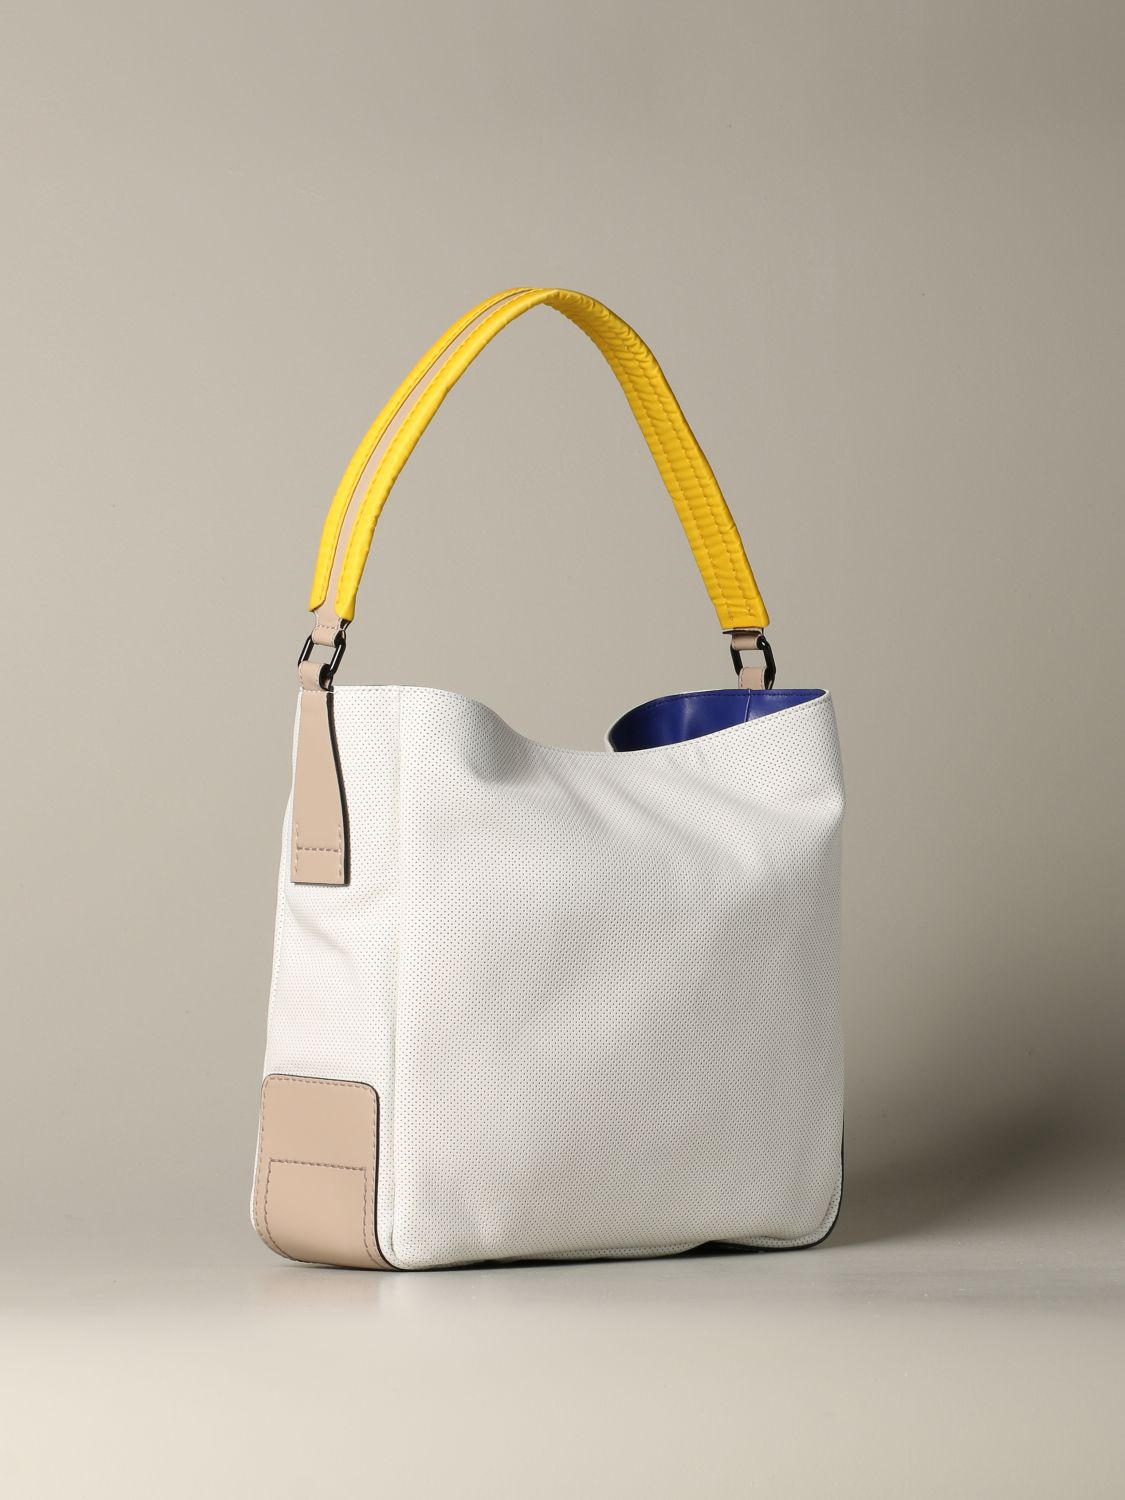 Hogan shoulder bag in micro-dots leather white 2